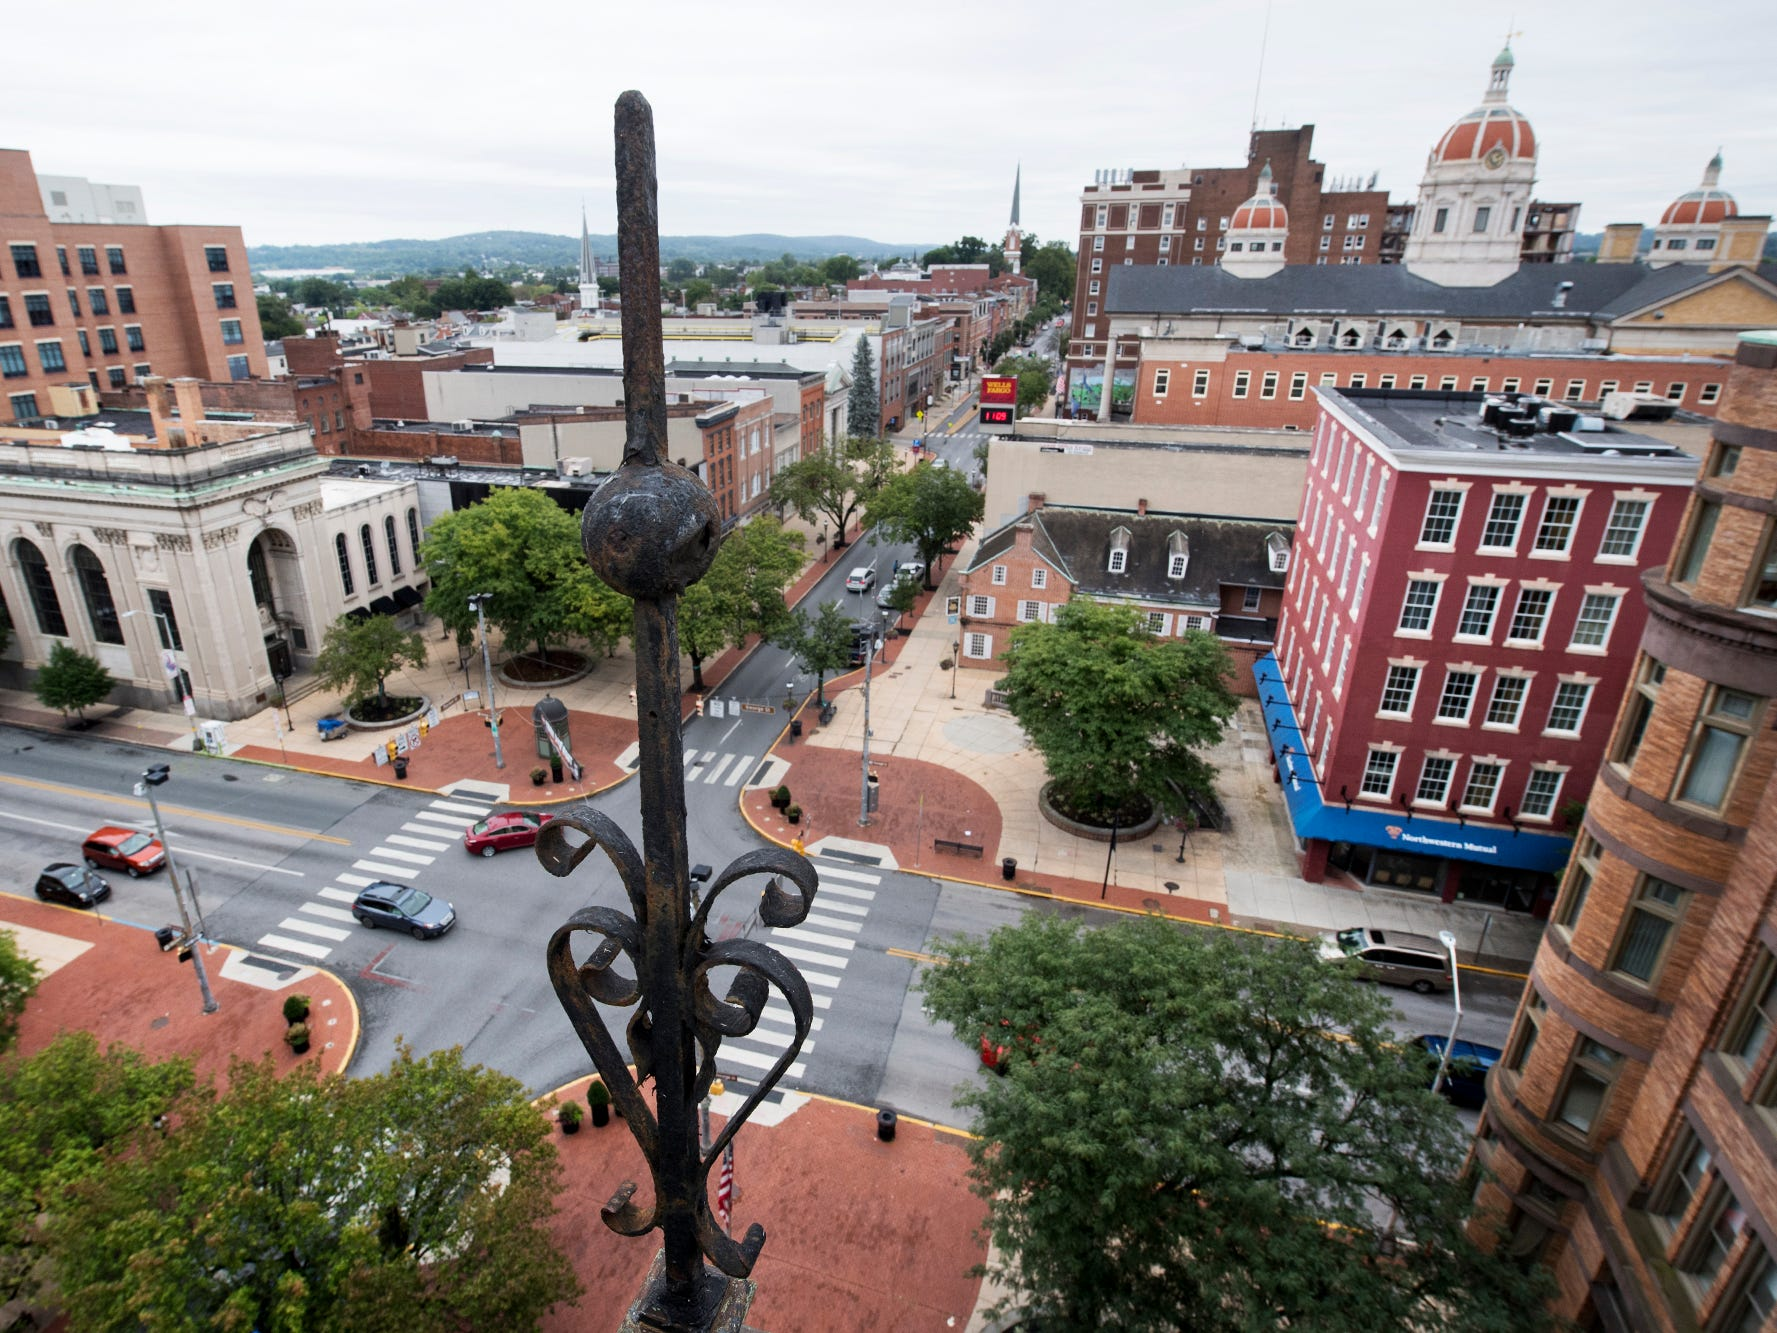 This is looking northwest across Continental Square from the roof of the Rupp in York.